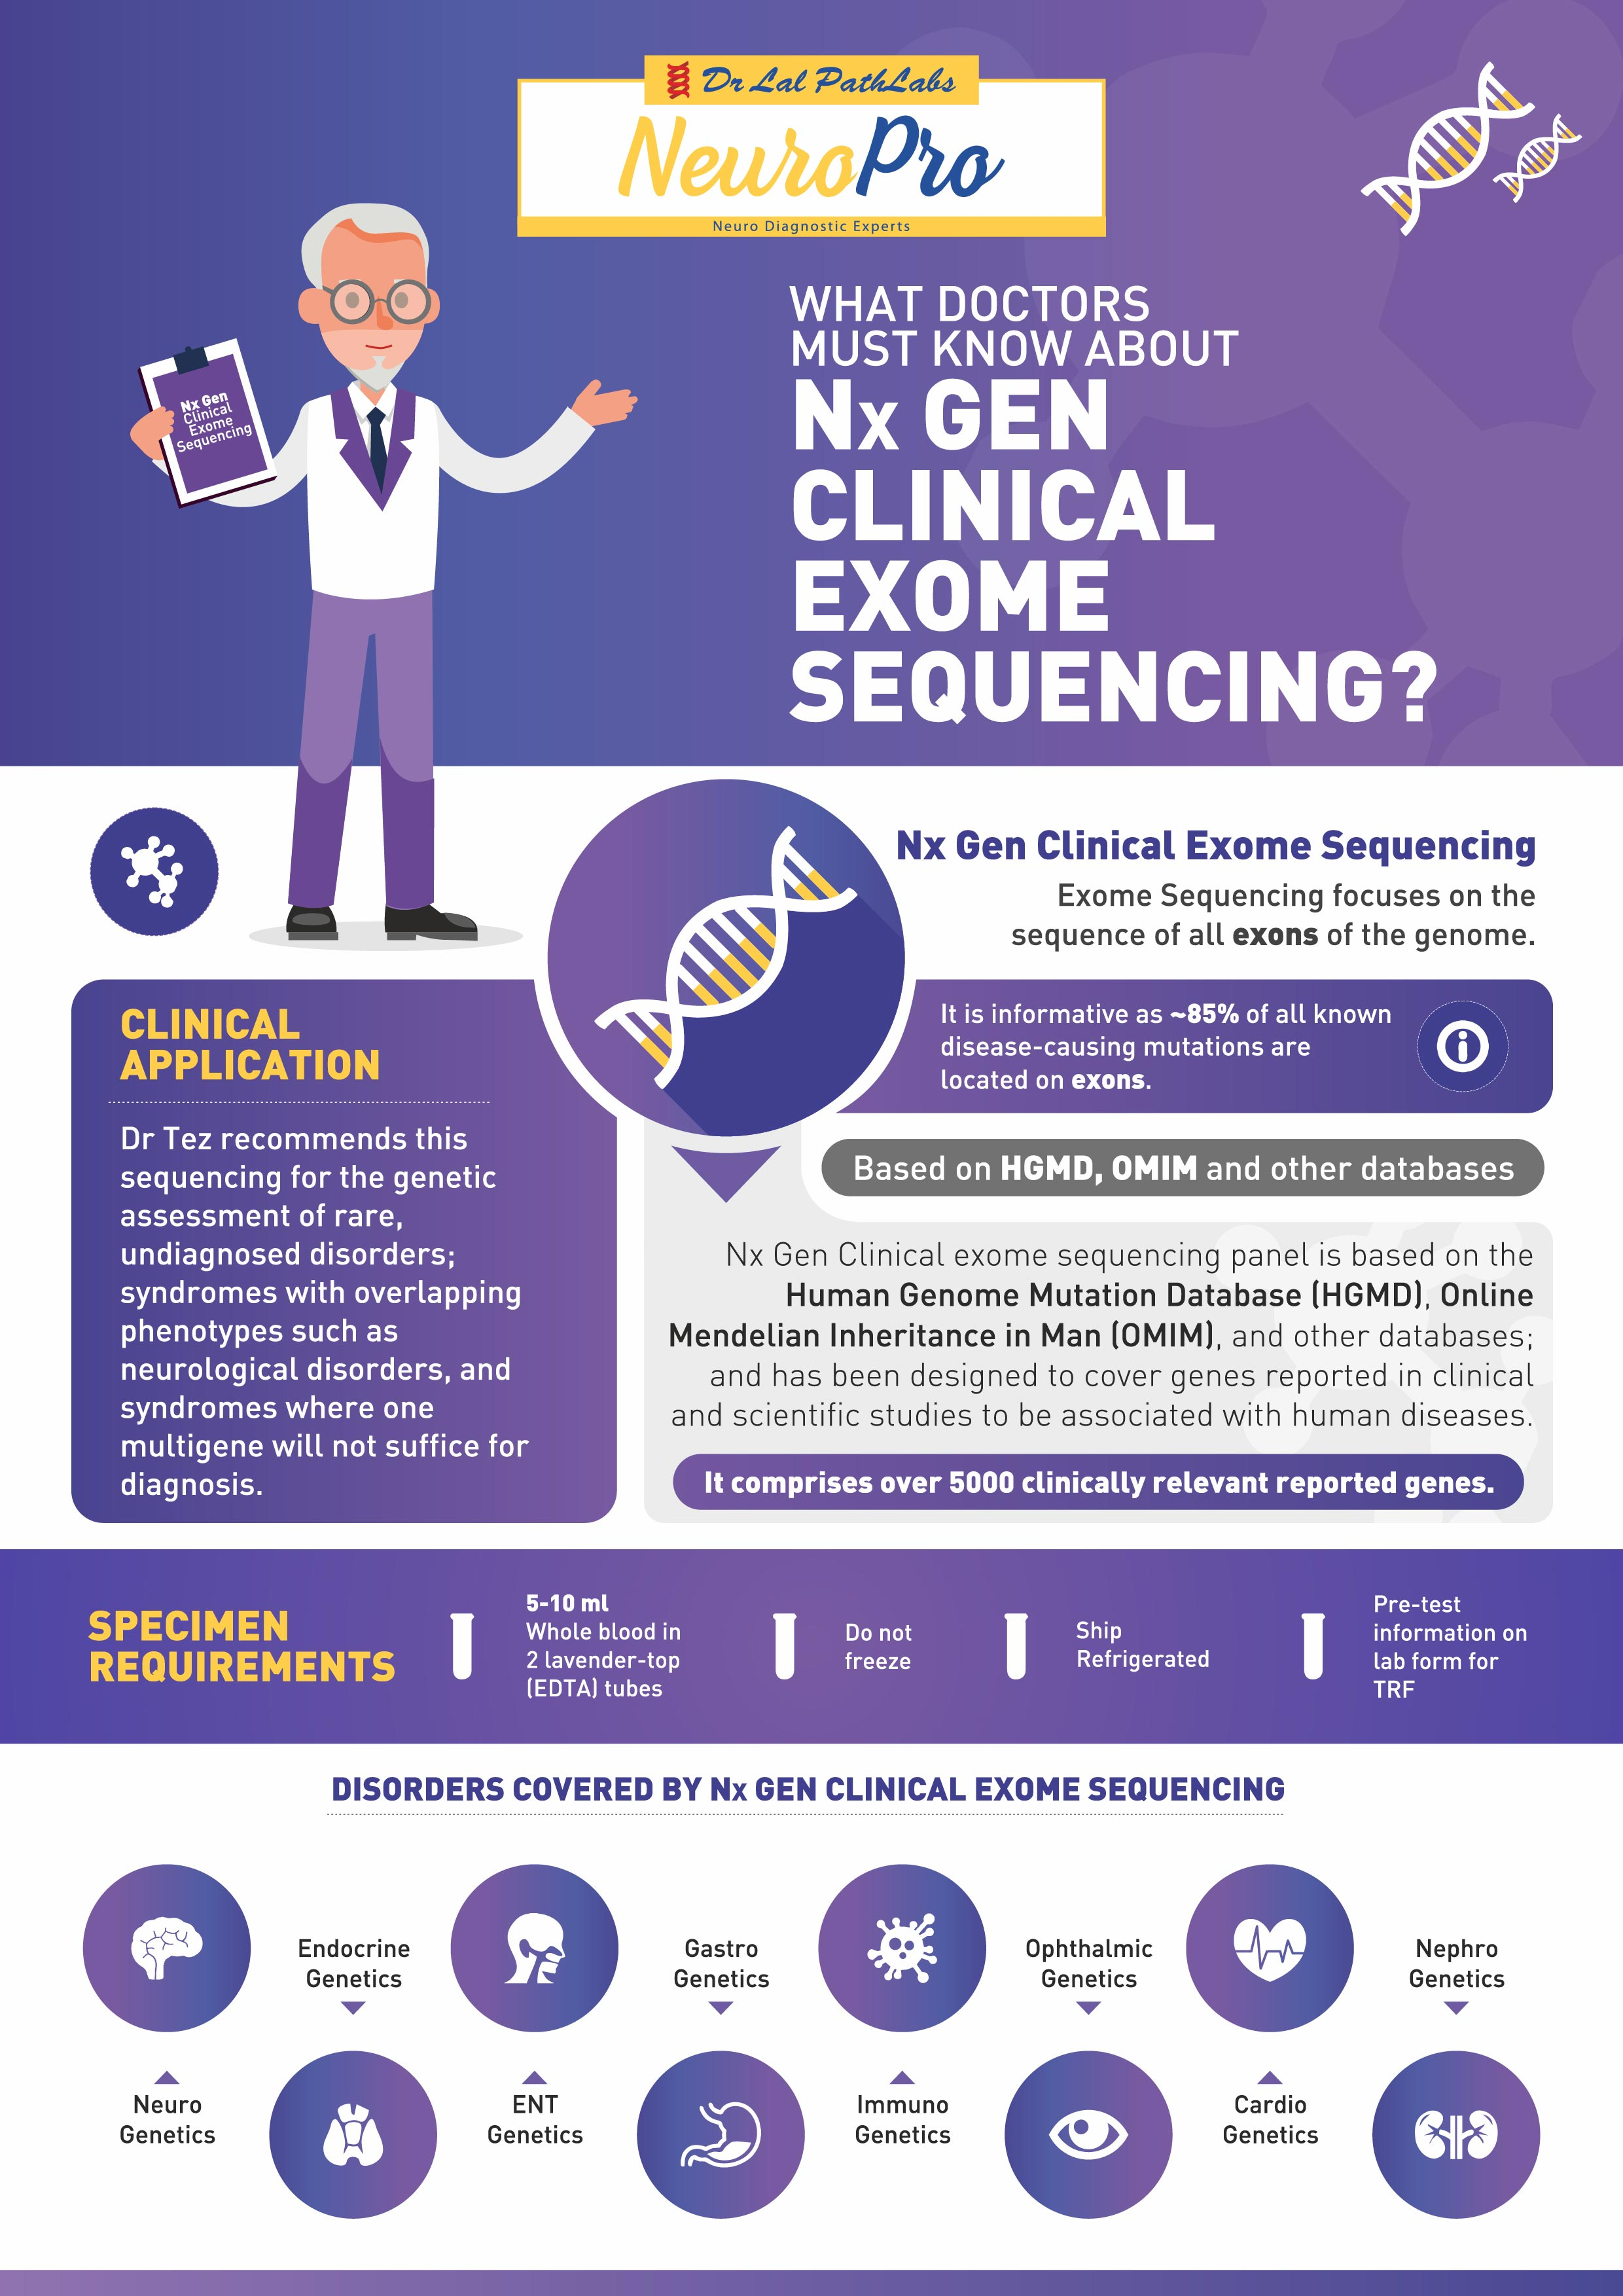 What Doctors Must Know About Nx Gen Clicnical Exome Sequencing